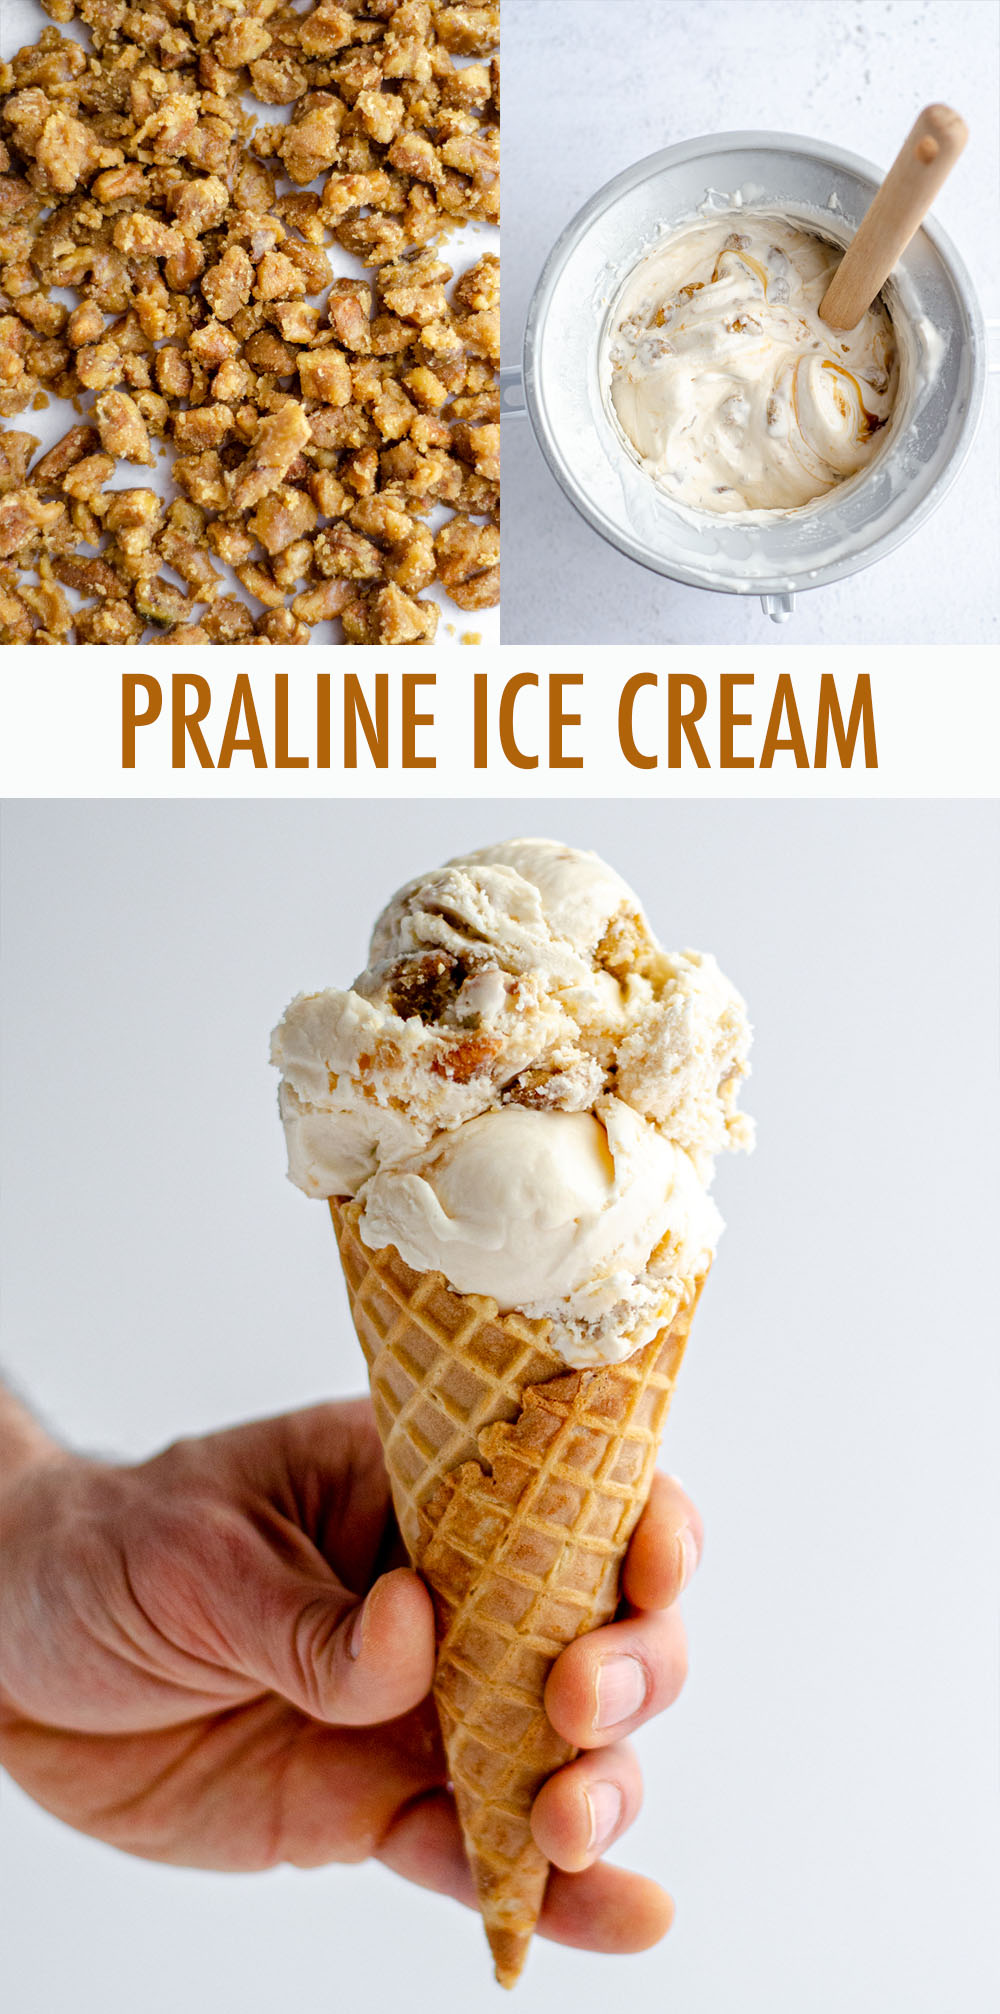 An easy homemade vanilla ice cream base swirled with salted caramel sauce and crunchy pecan praline pieces.